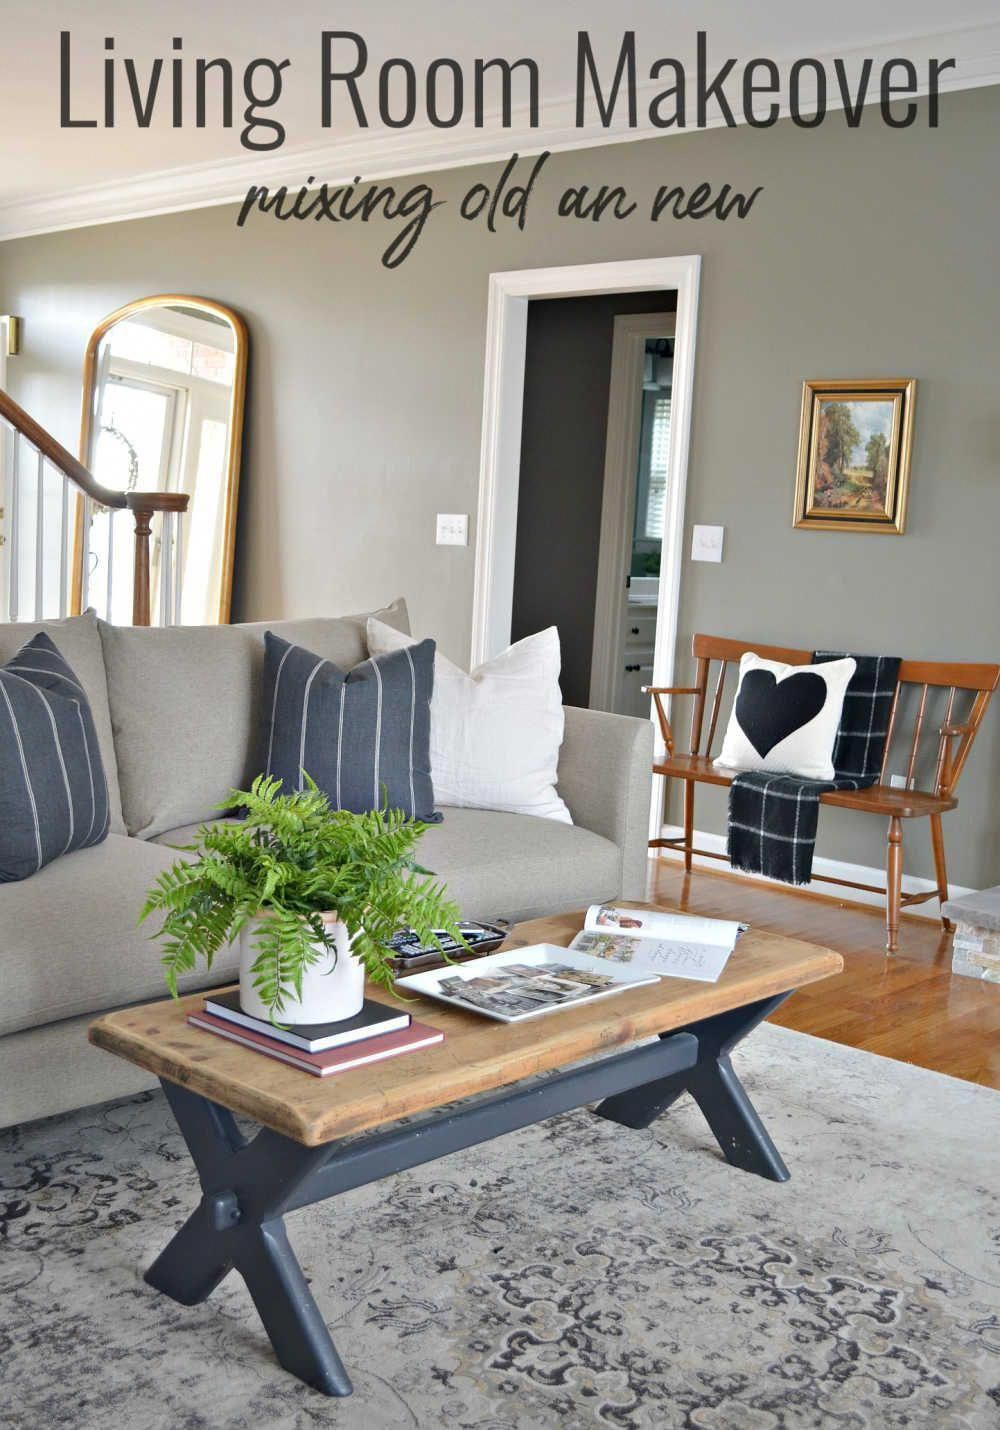 Creating a cozy living room using new pieces from @bassettUS and mixing with existing homeowner pieces. This living room makeover is a trendy version of country modern style. #inpartnership #mybassett #bassettfurniture #homedecor #homedesign #ModernHomeDecorLivingRoom #countryhomedecor